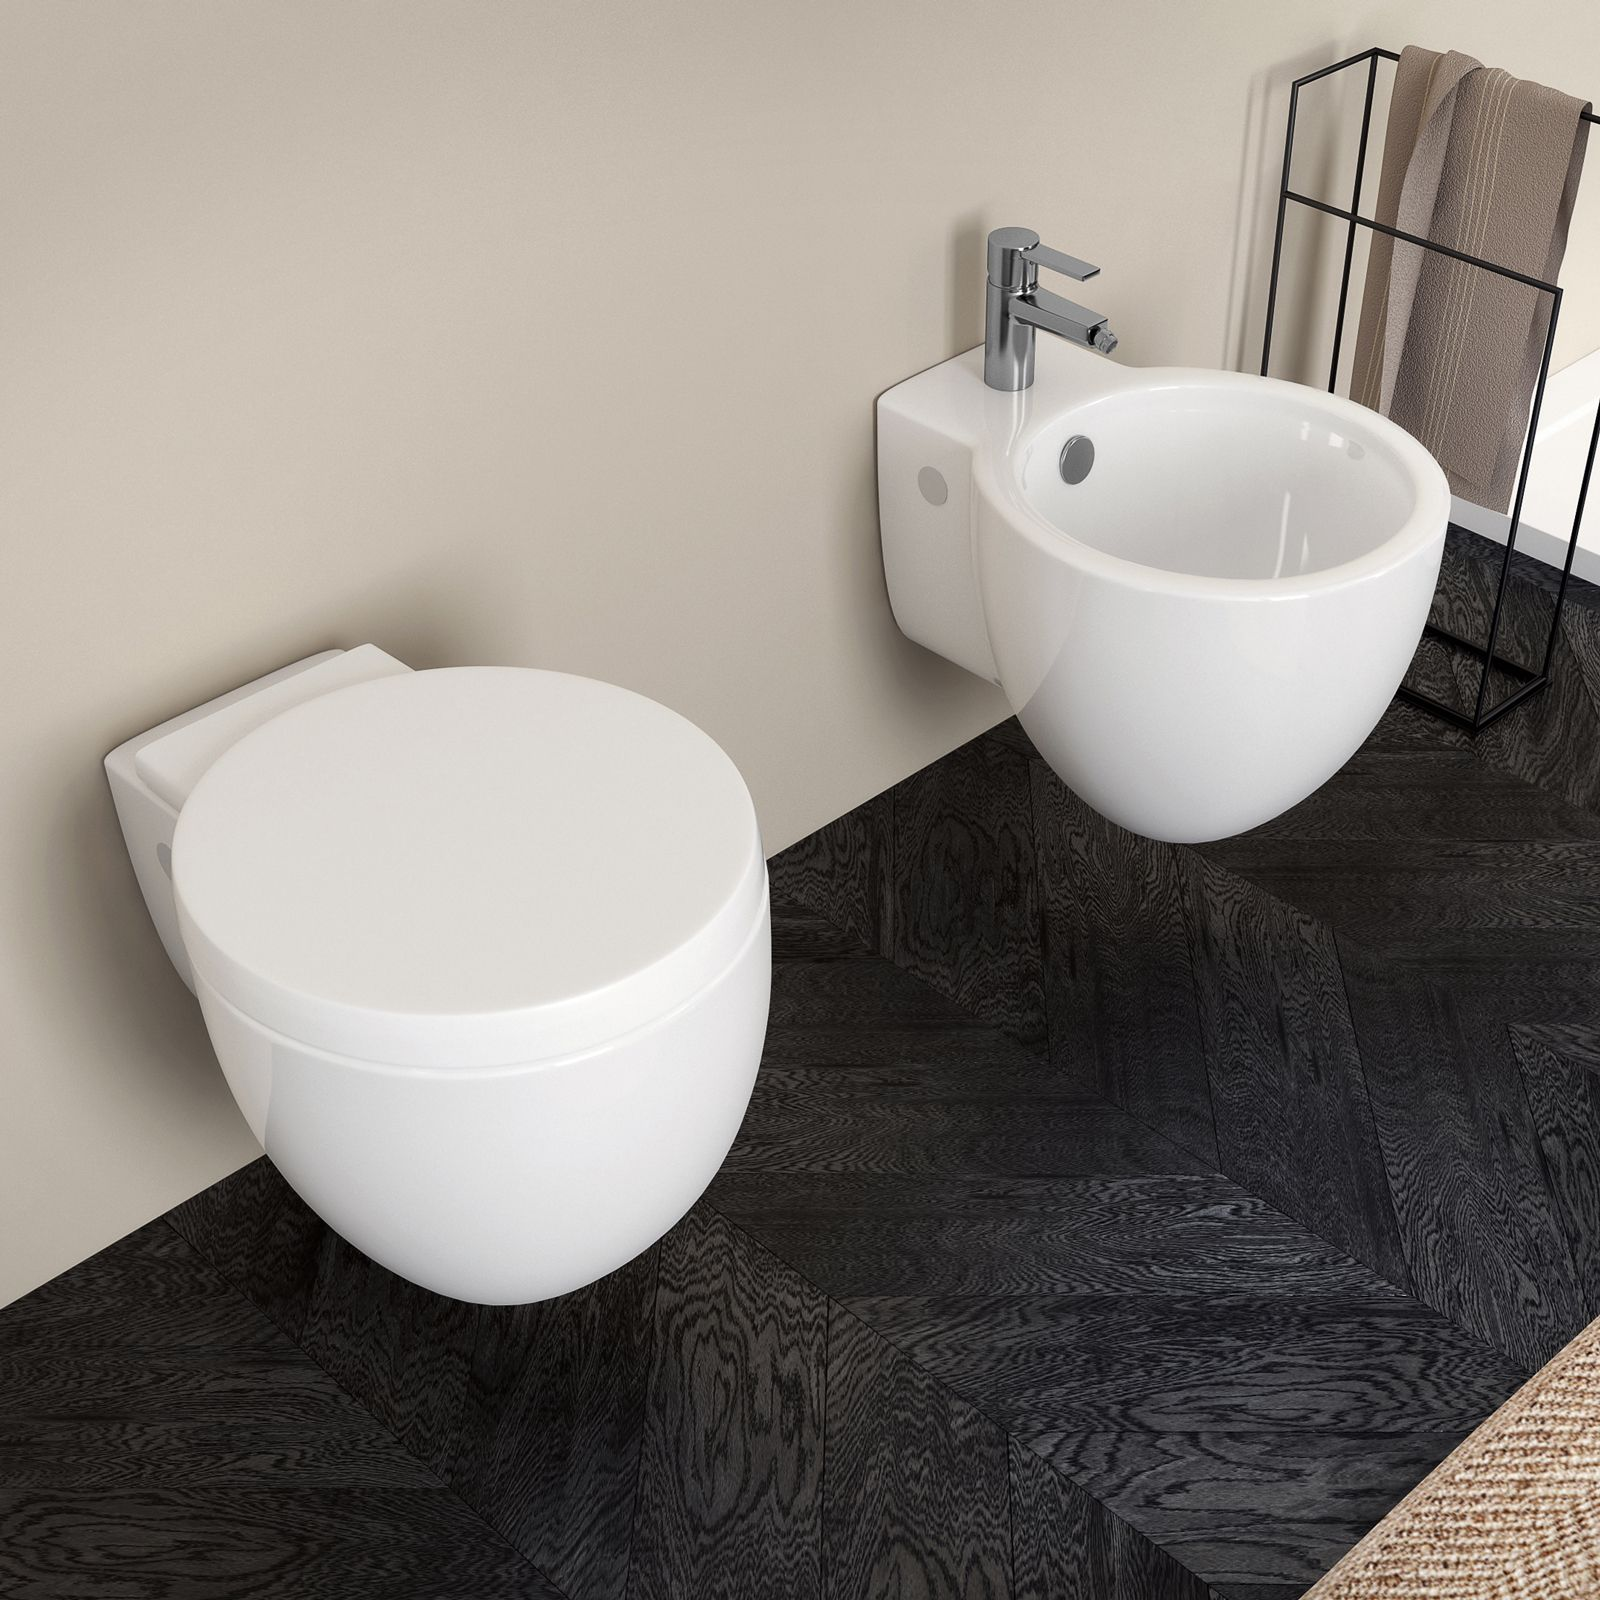 Sanitari Sospesi Bloom In Ceramica Con Sedile Copri Wc Softclose